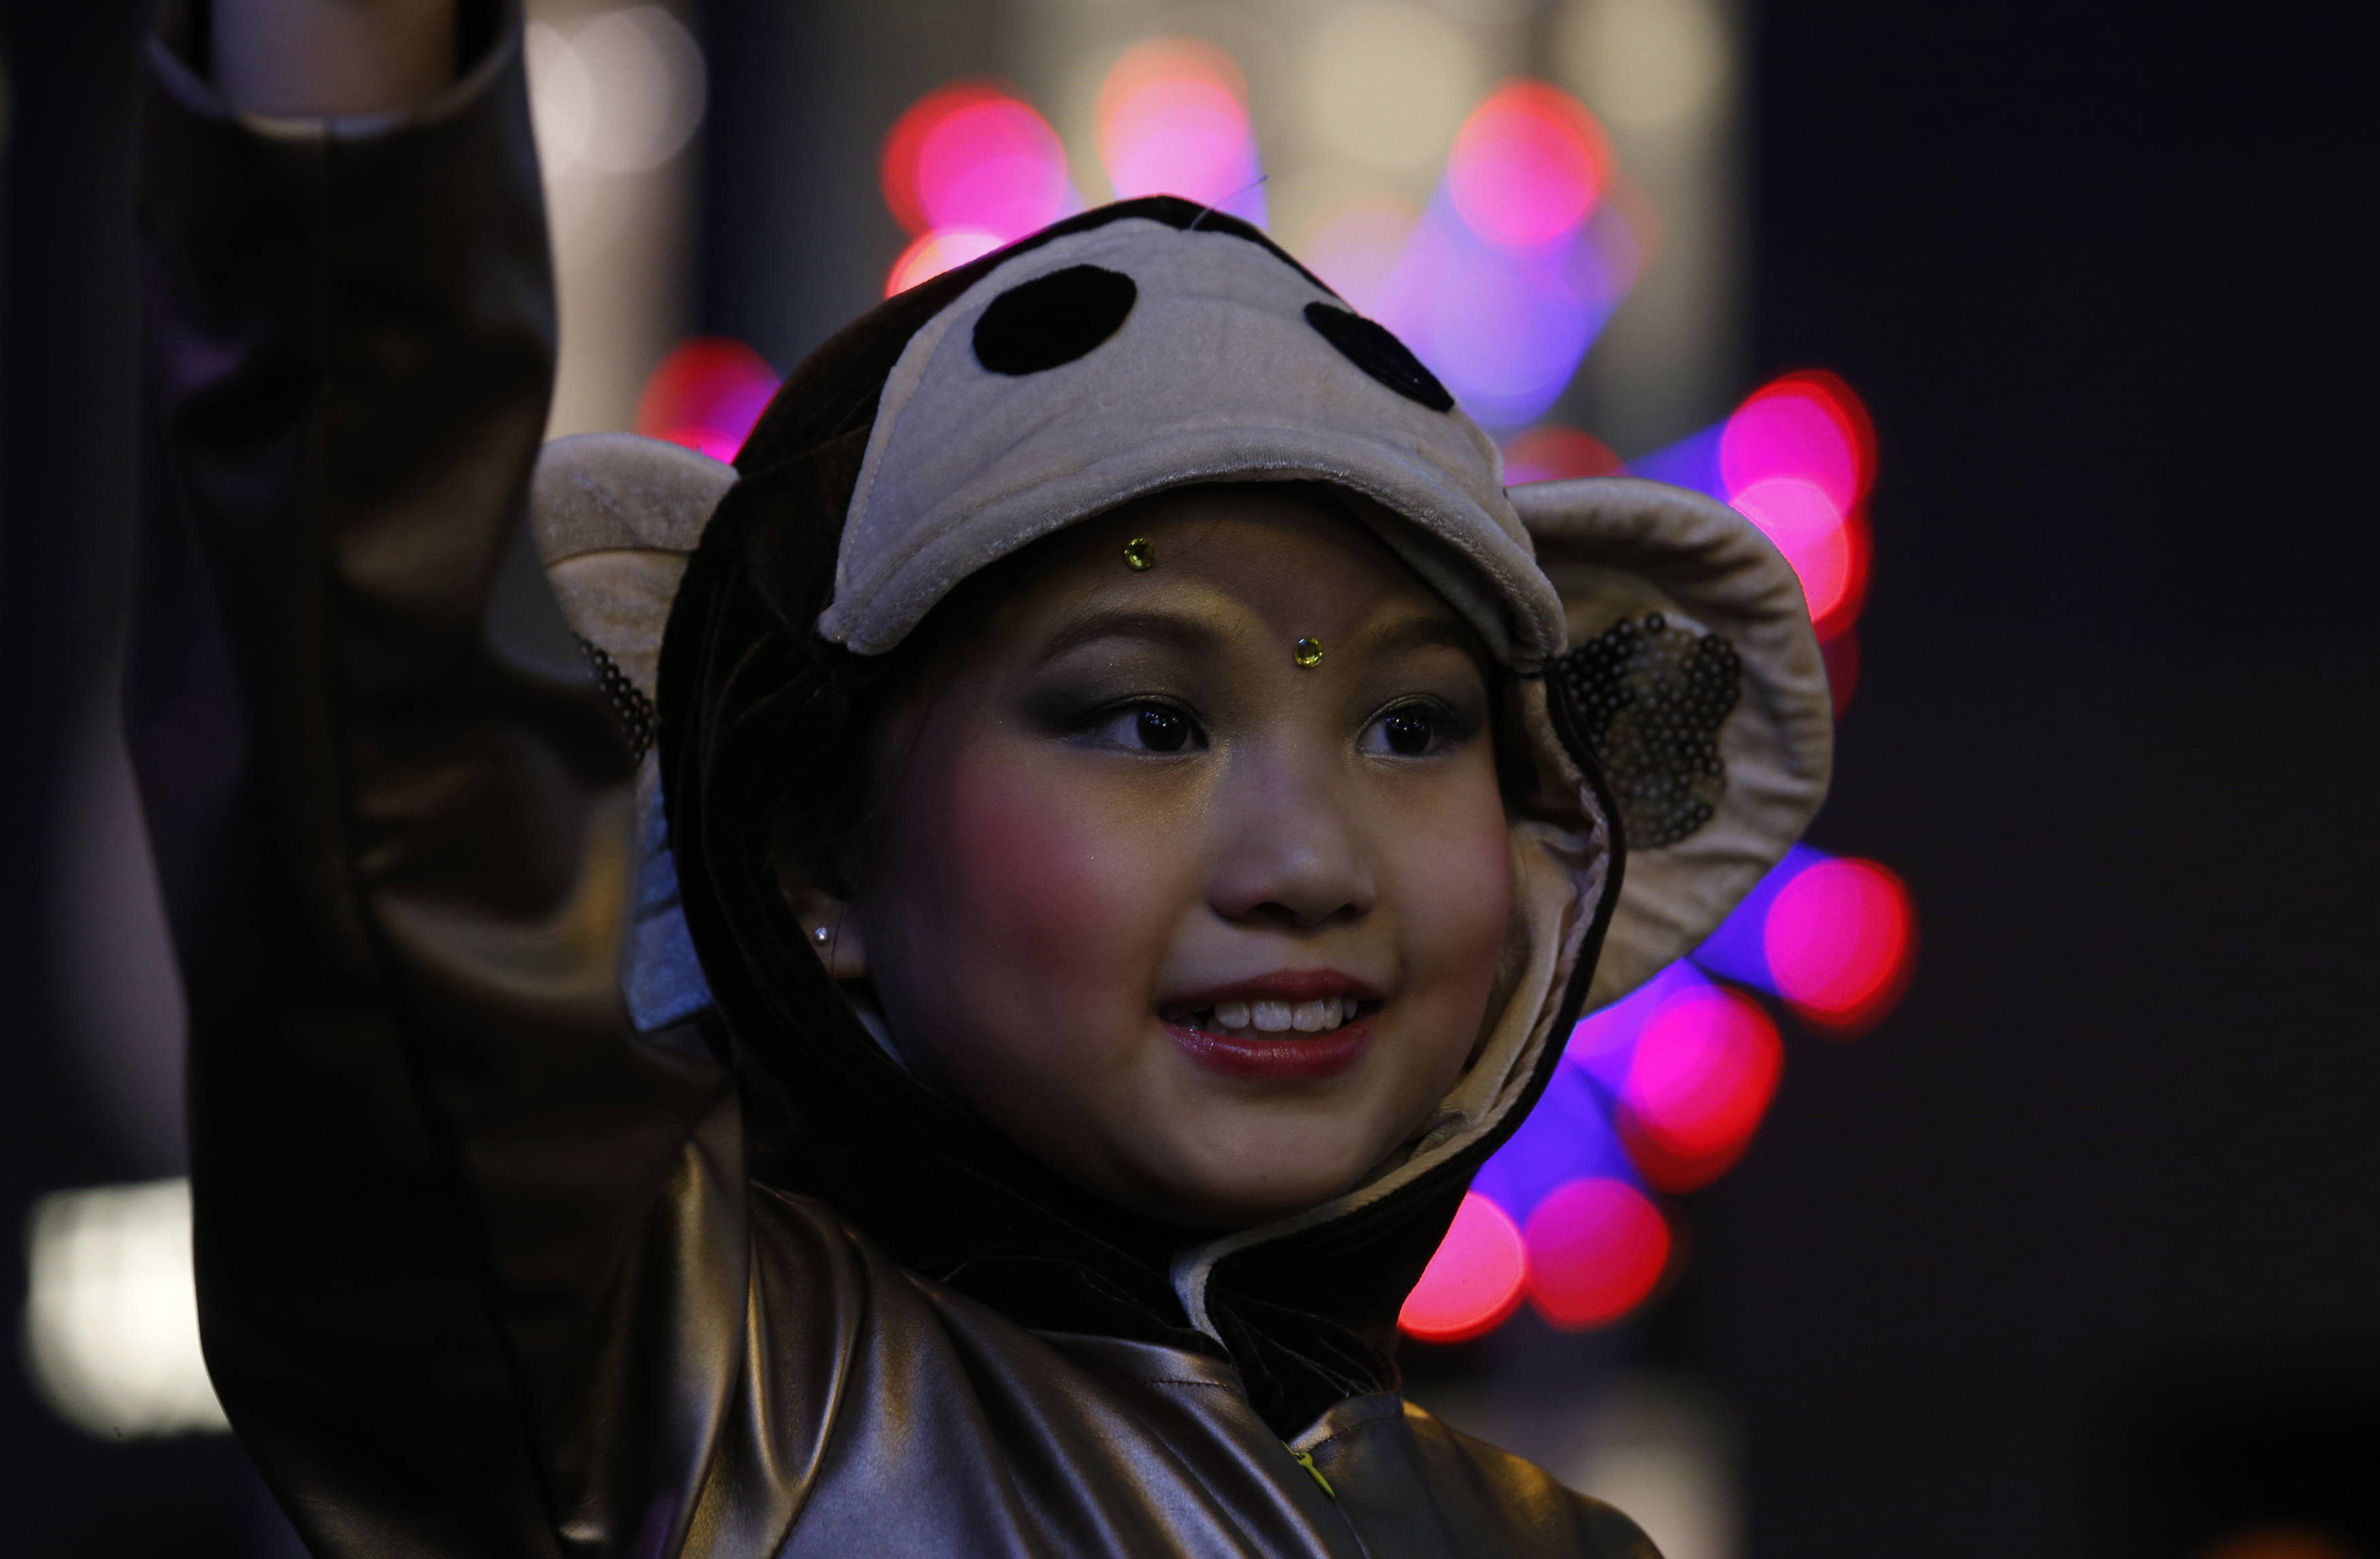 A young performer dressed as a monkey attends a parade celebrating the first day of the Lunar New Year of the Monkey in Hong Kong, China on Feb. 8. Photo by Bobby Yip/Reuters